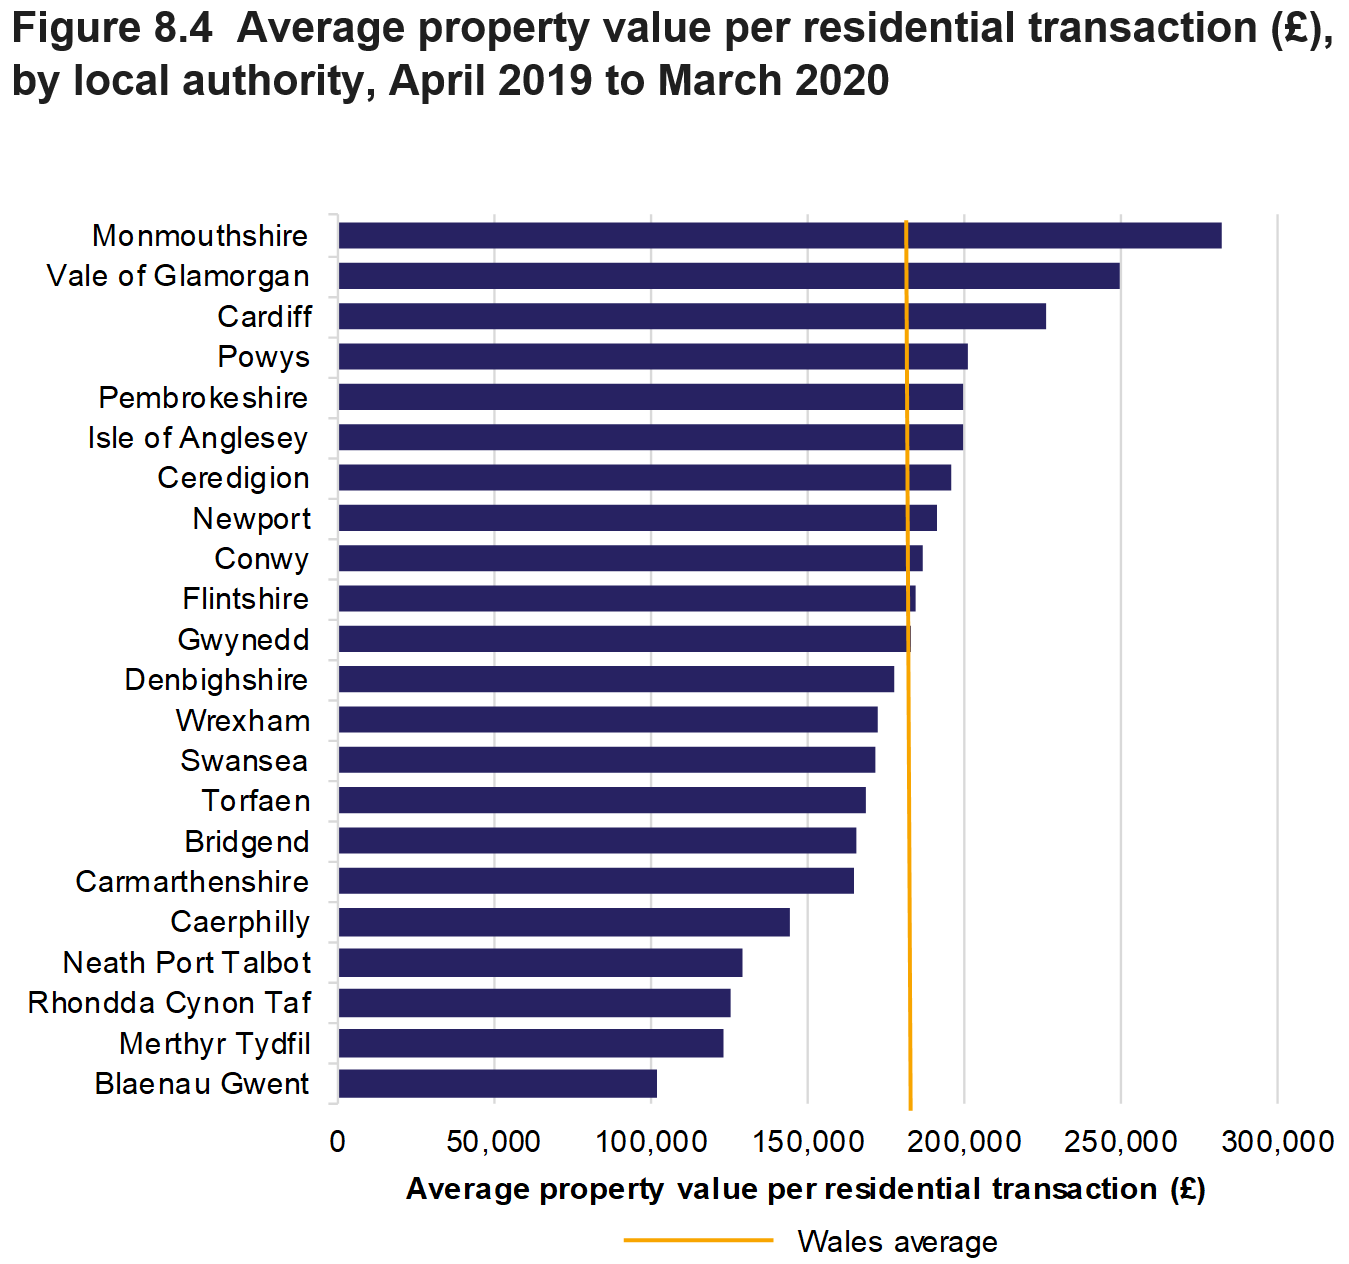 Figure 8.4 shows the average property value per residential transaction, for all local authorities and a Wales average, April 2019 to March 2020.